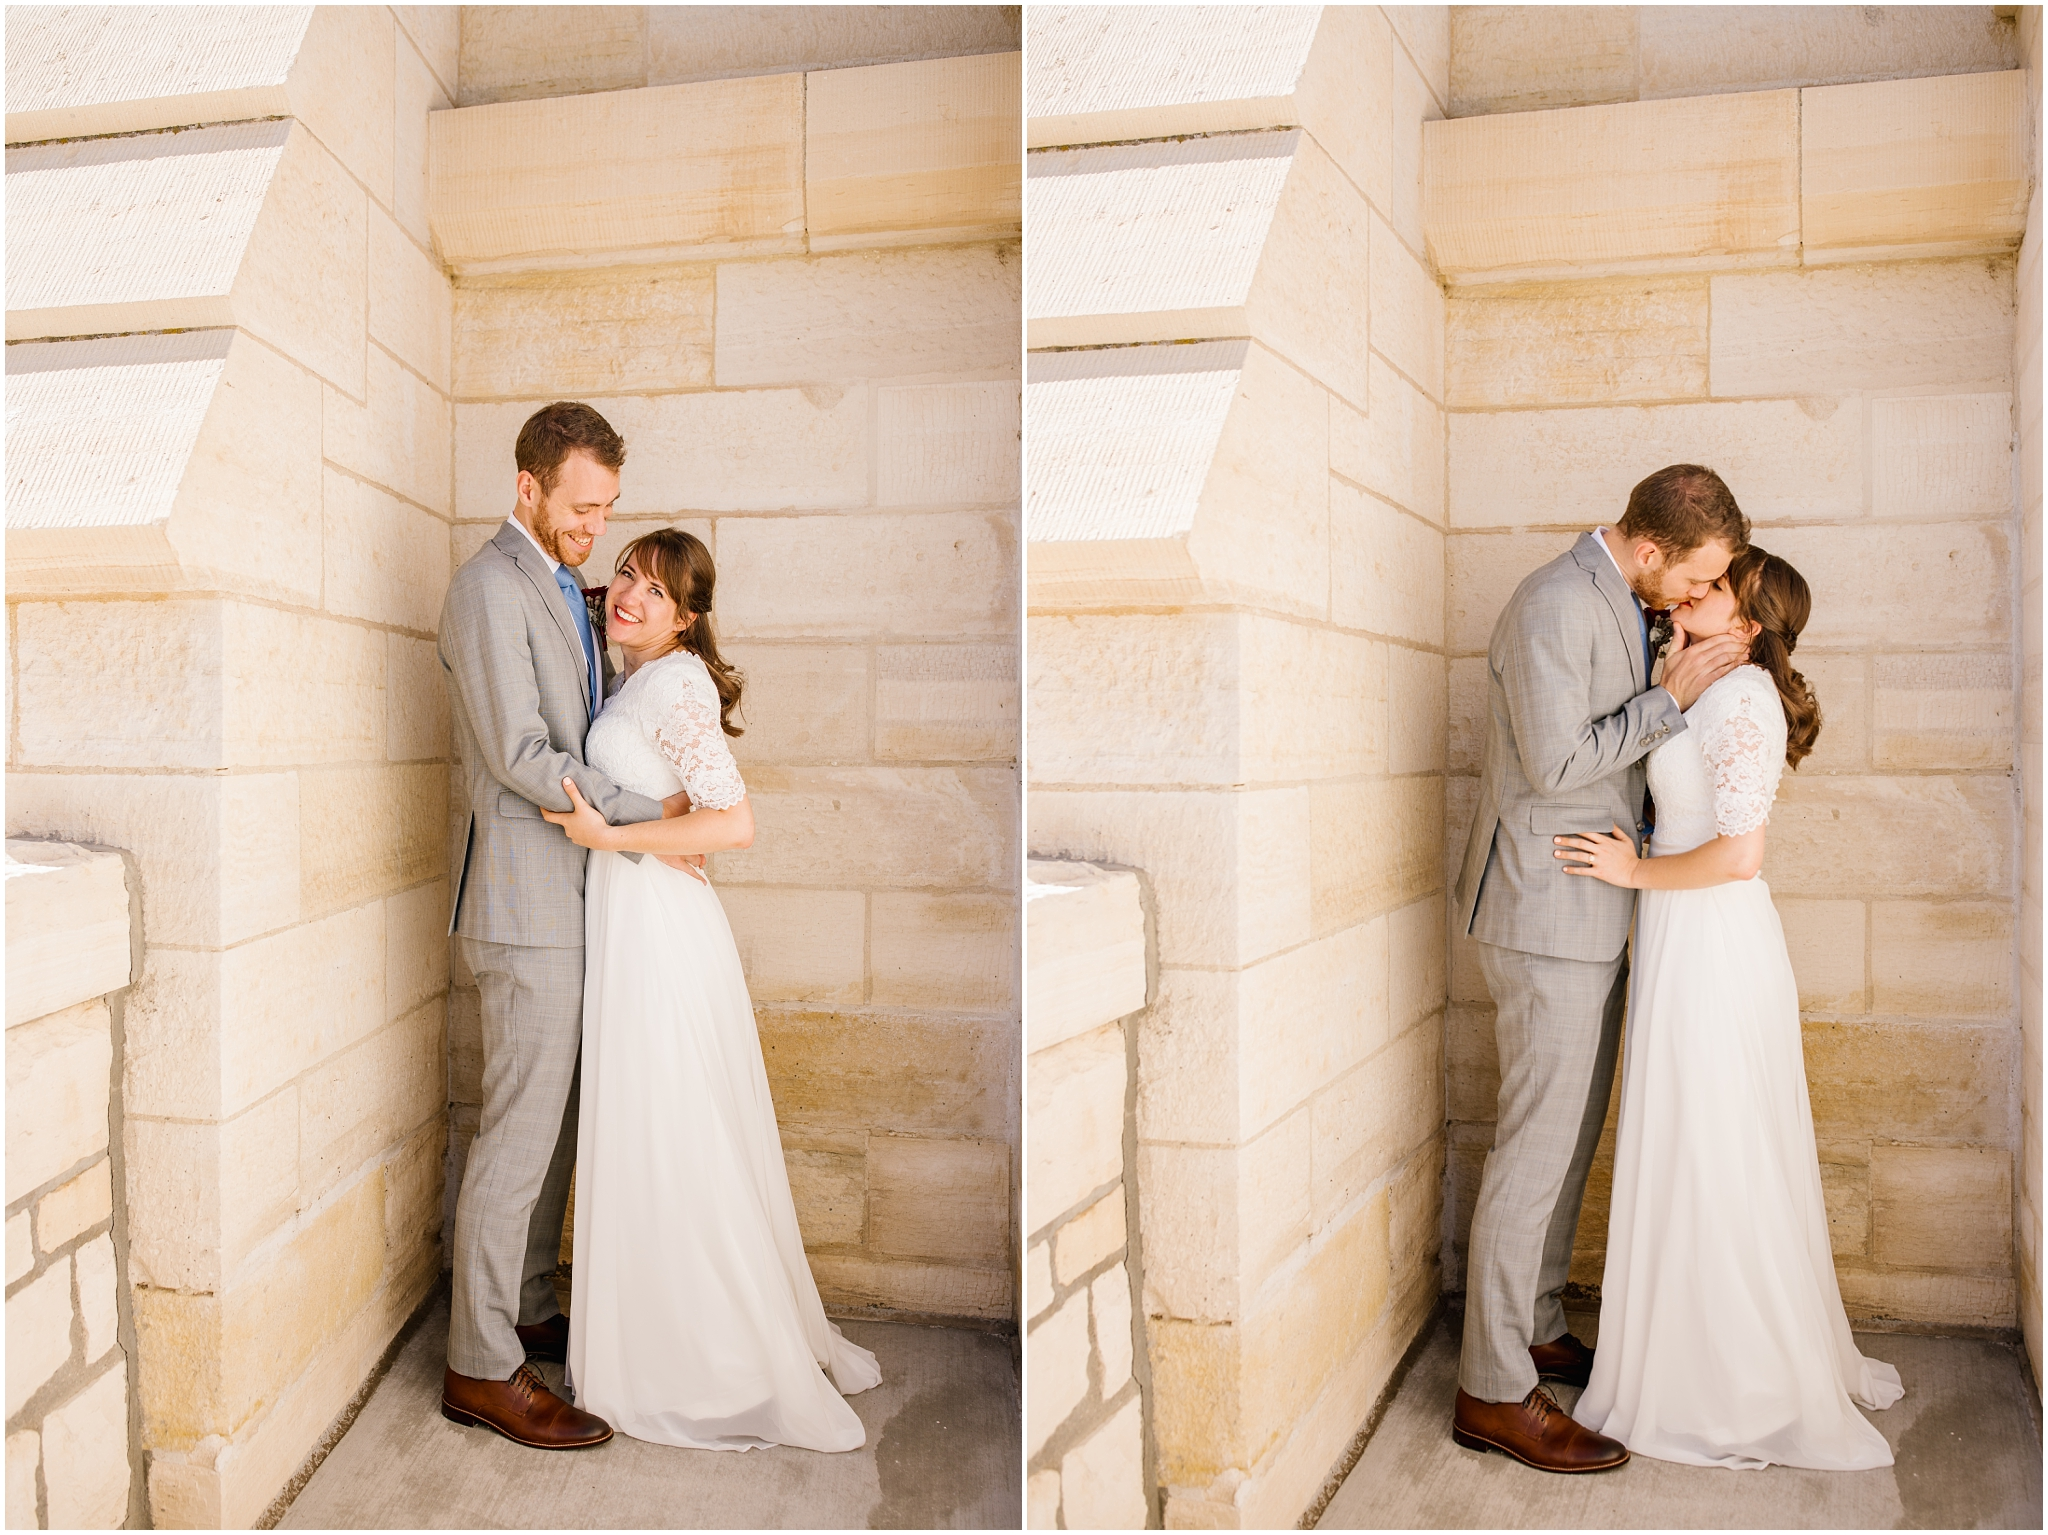 BrynneWinston-101_Lizzie-B-Imagery-Utah-Wedding-Photographer-Utah-County-Manti-Temple.jpg